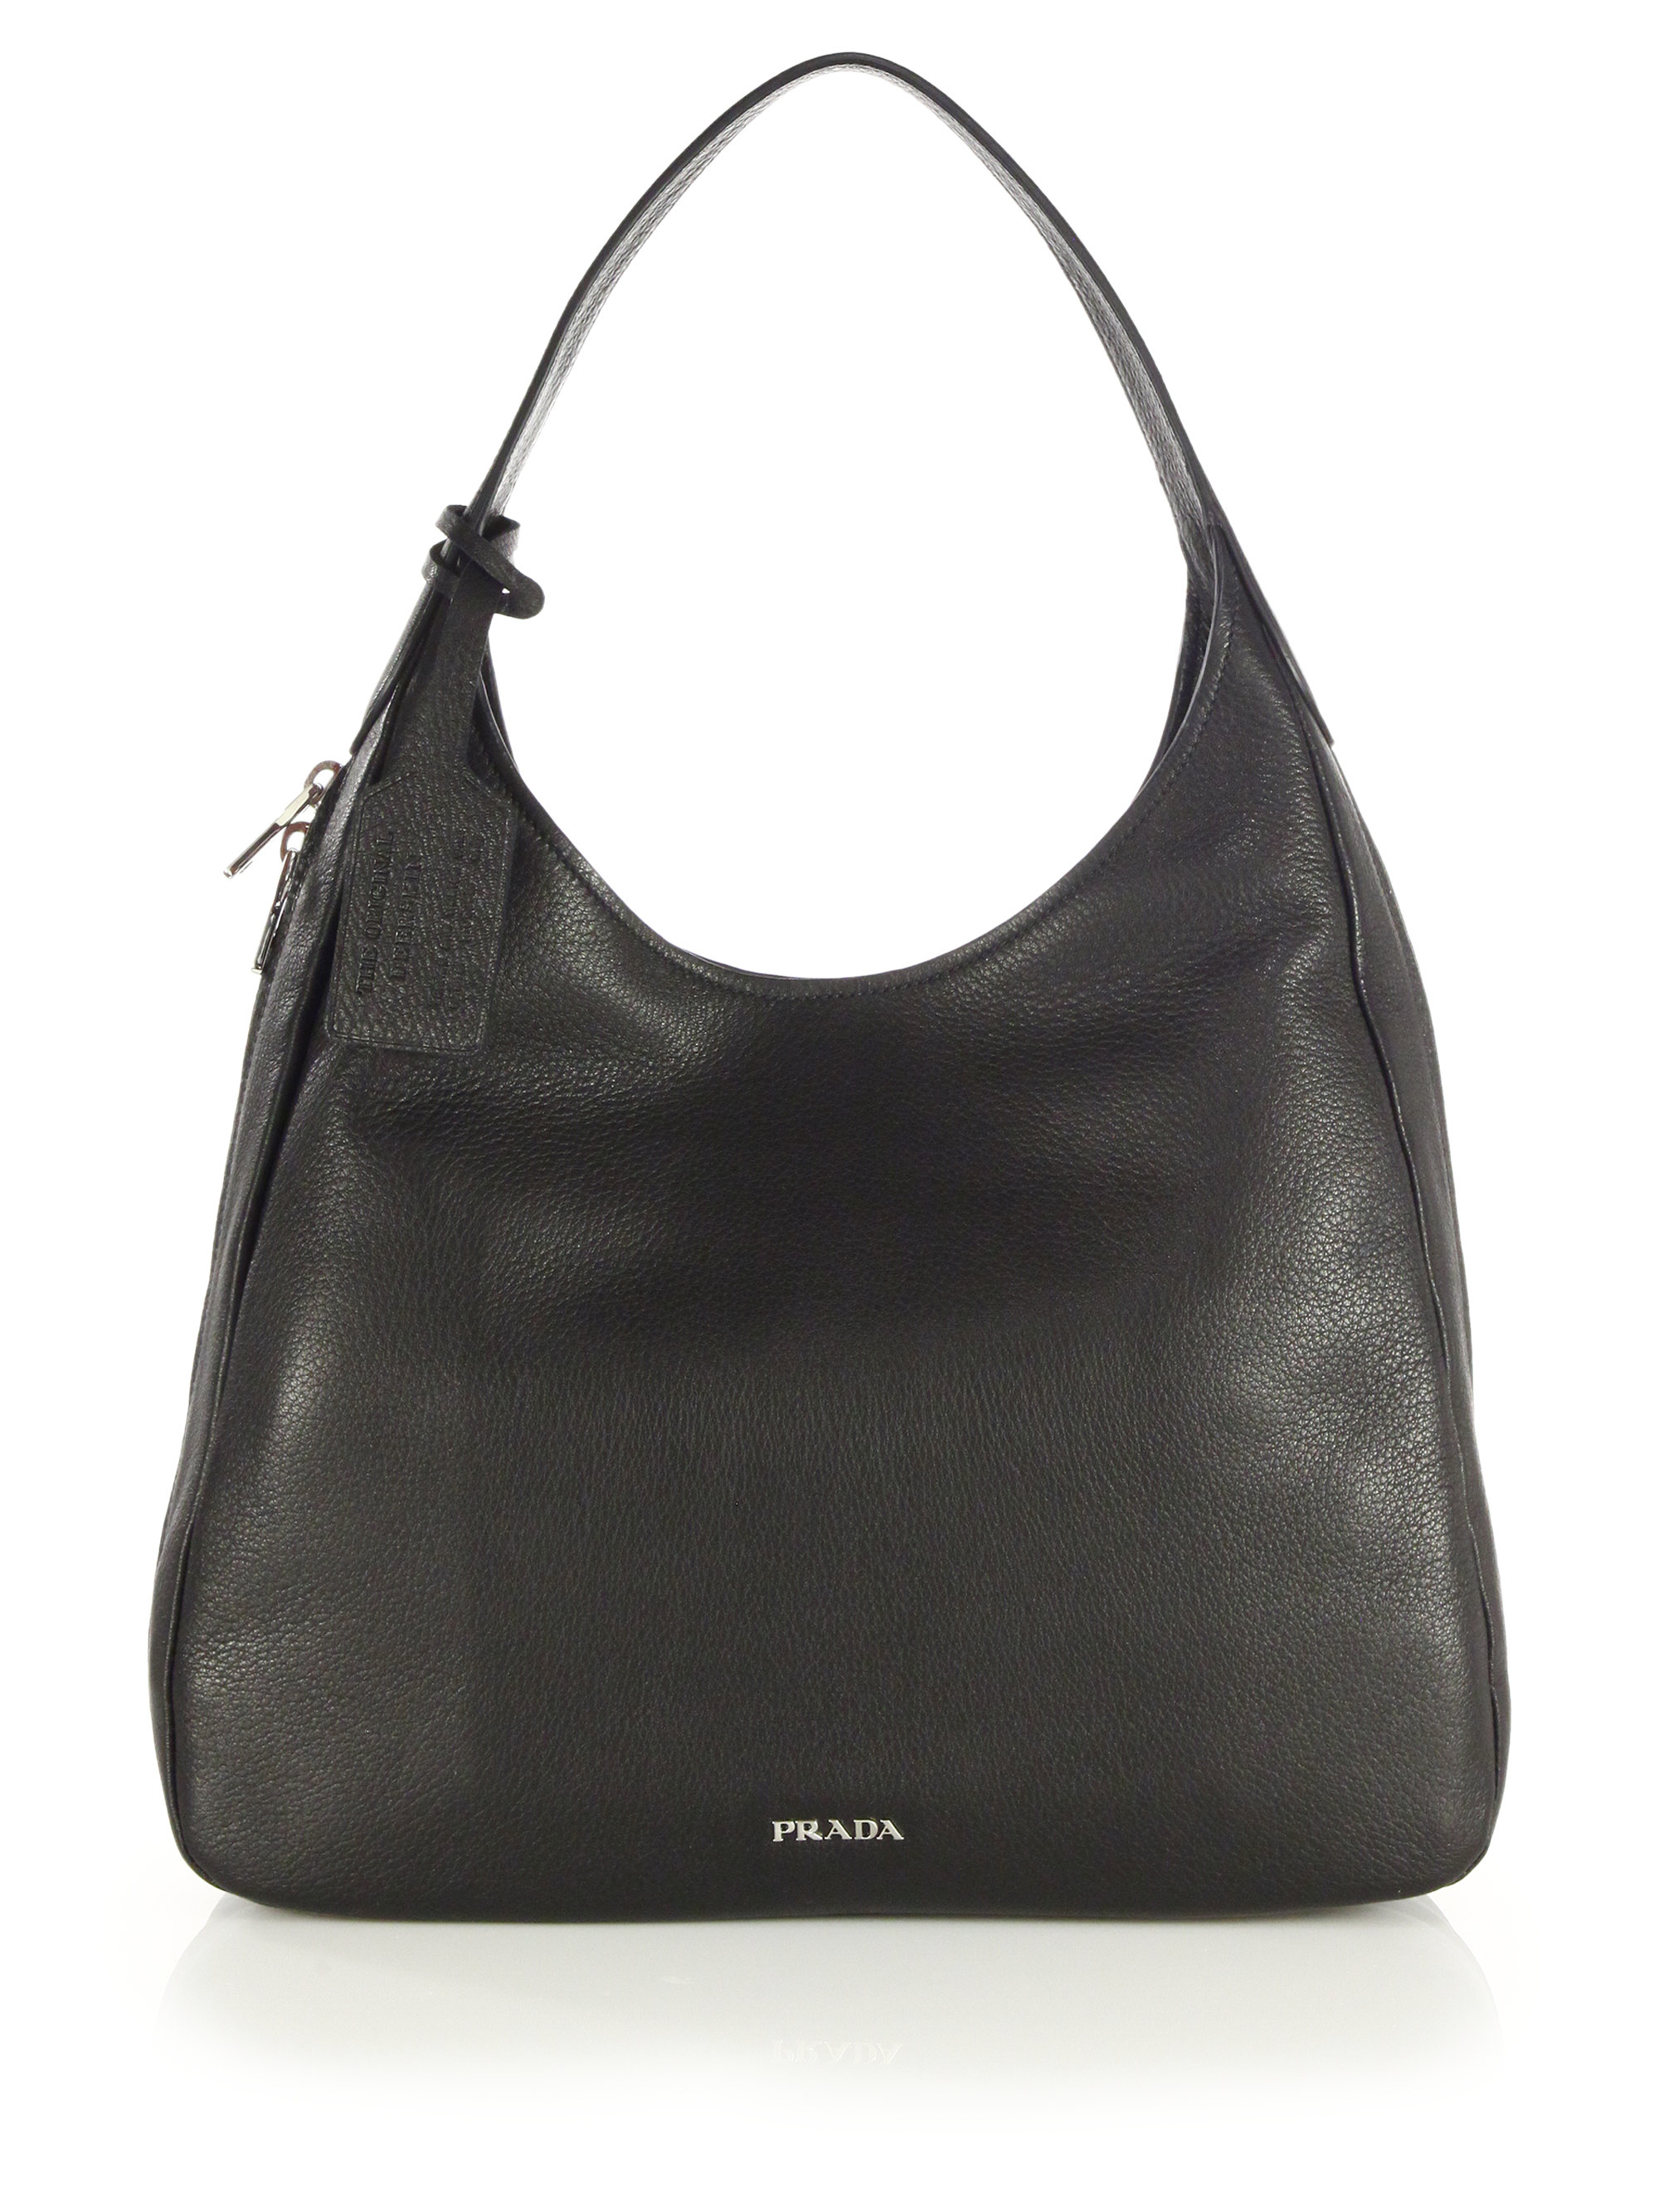 Prada Deerskin Hobo Bag in Black | Lyst